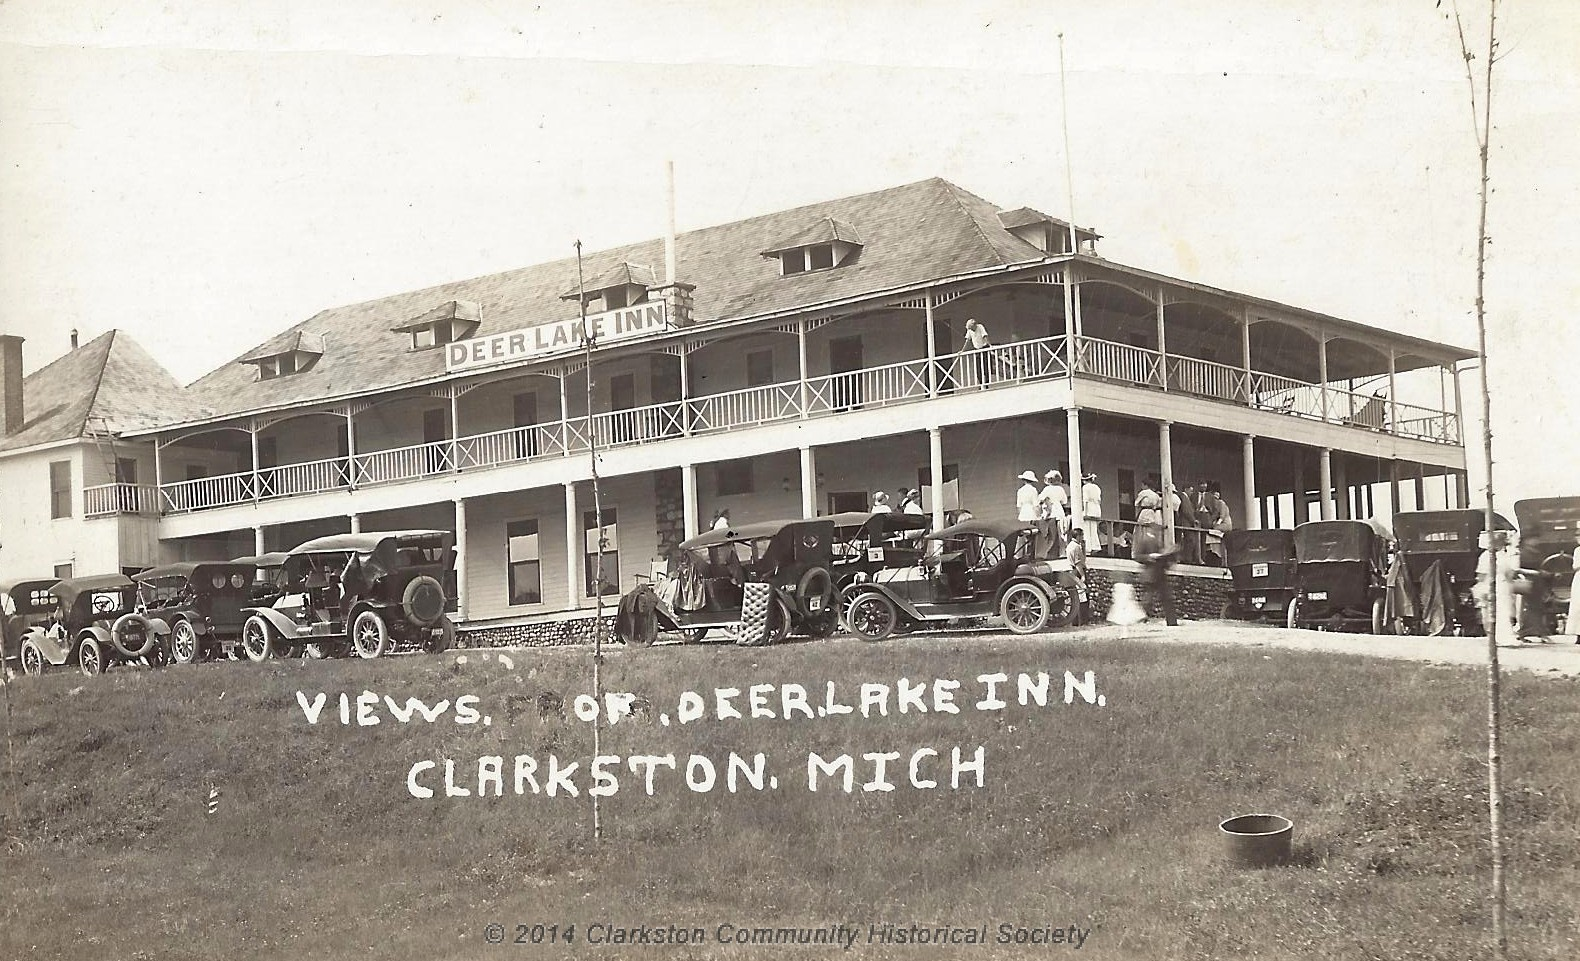 Deer Lake Inn, c. 1920